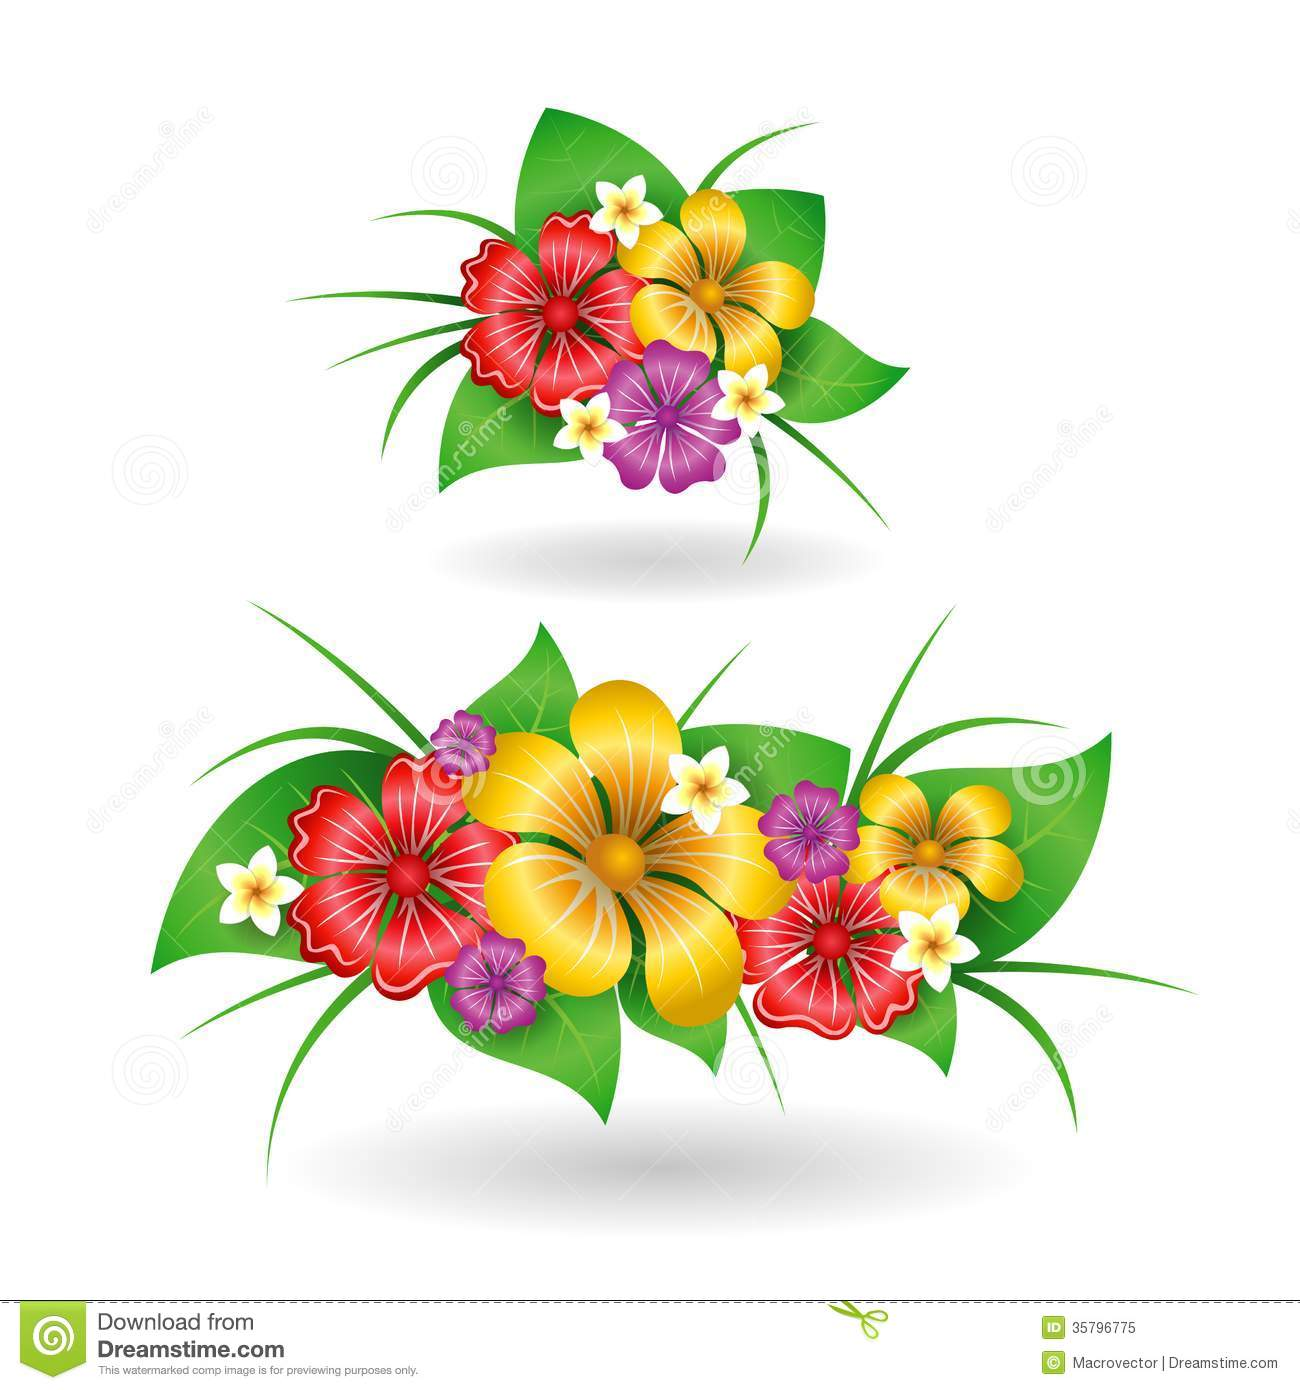 Flowers decor clipart #19